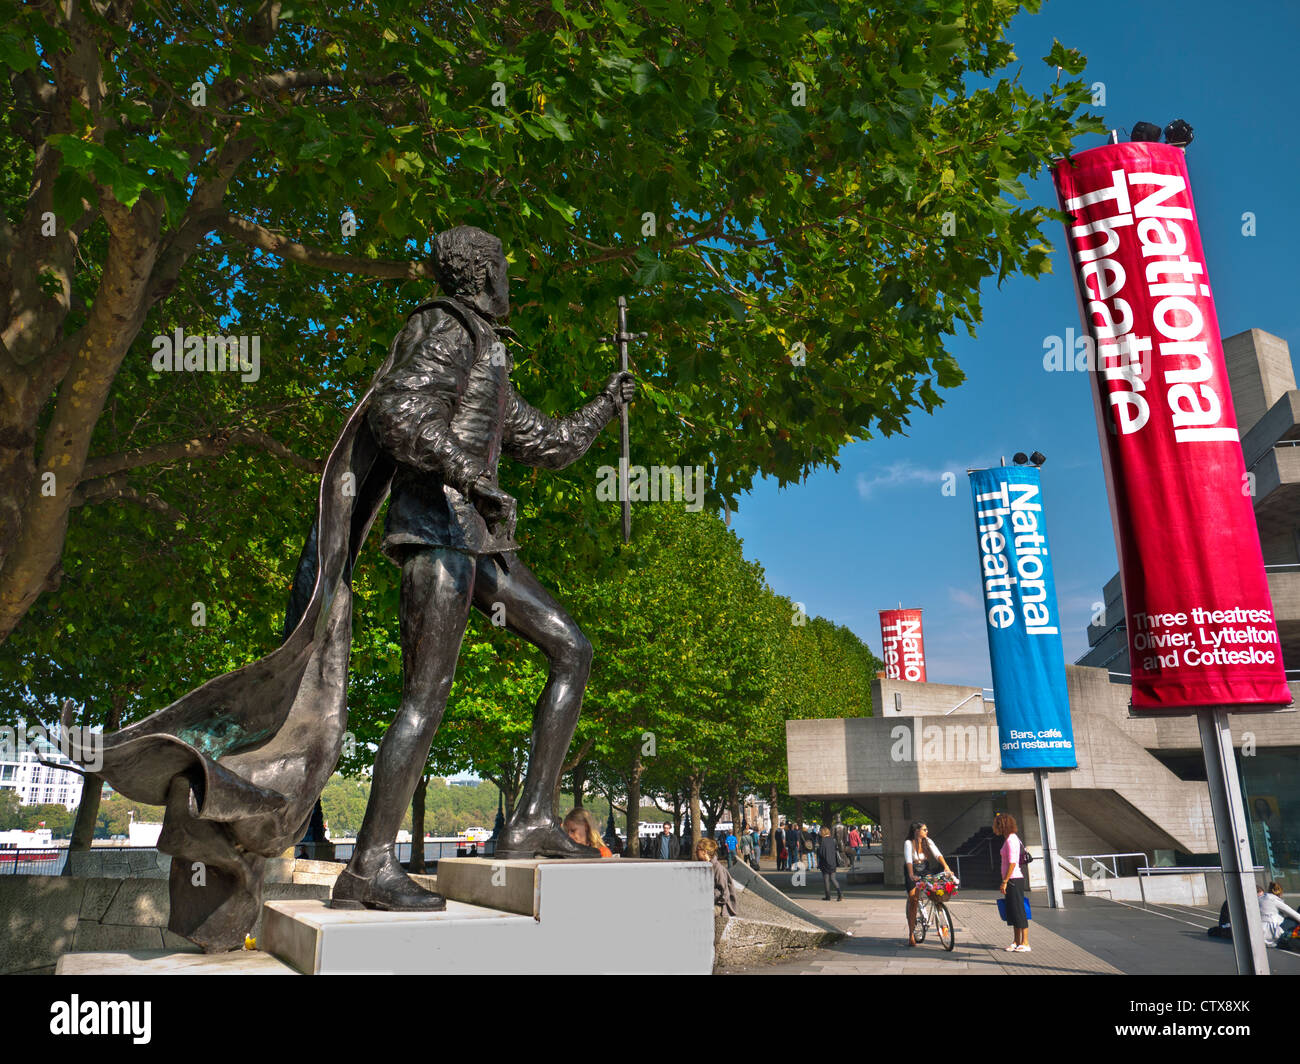 National Theatre and bronze statue of Lord Laurence Olivier  South Bank River Thames London UK - Stock Image